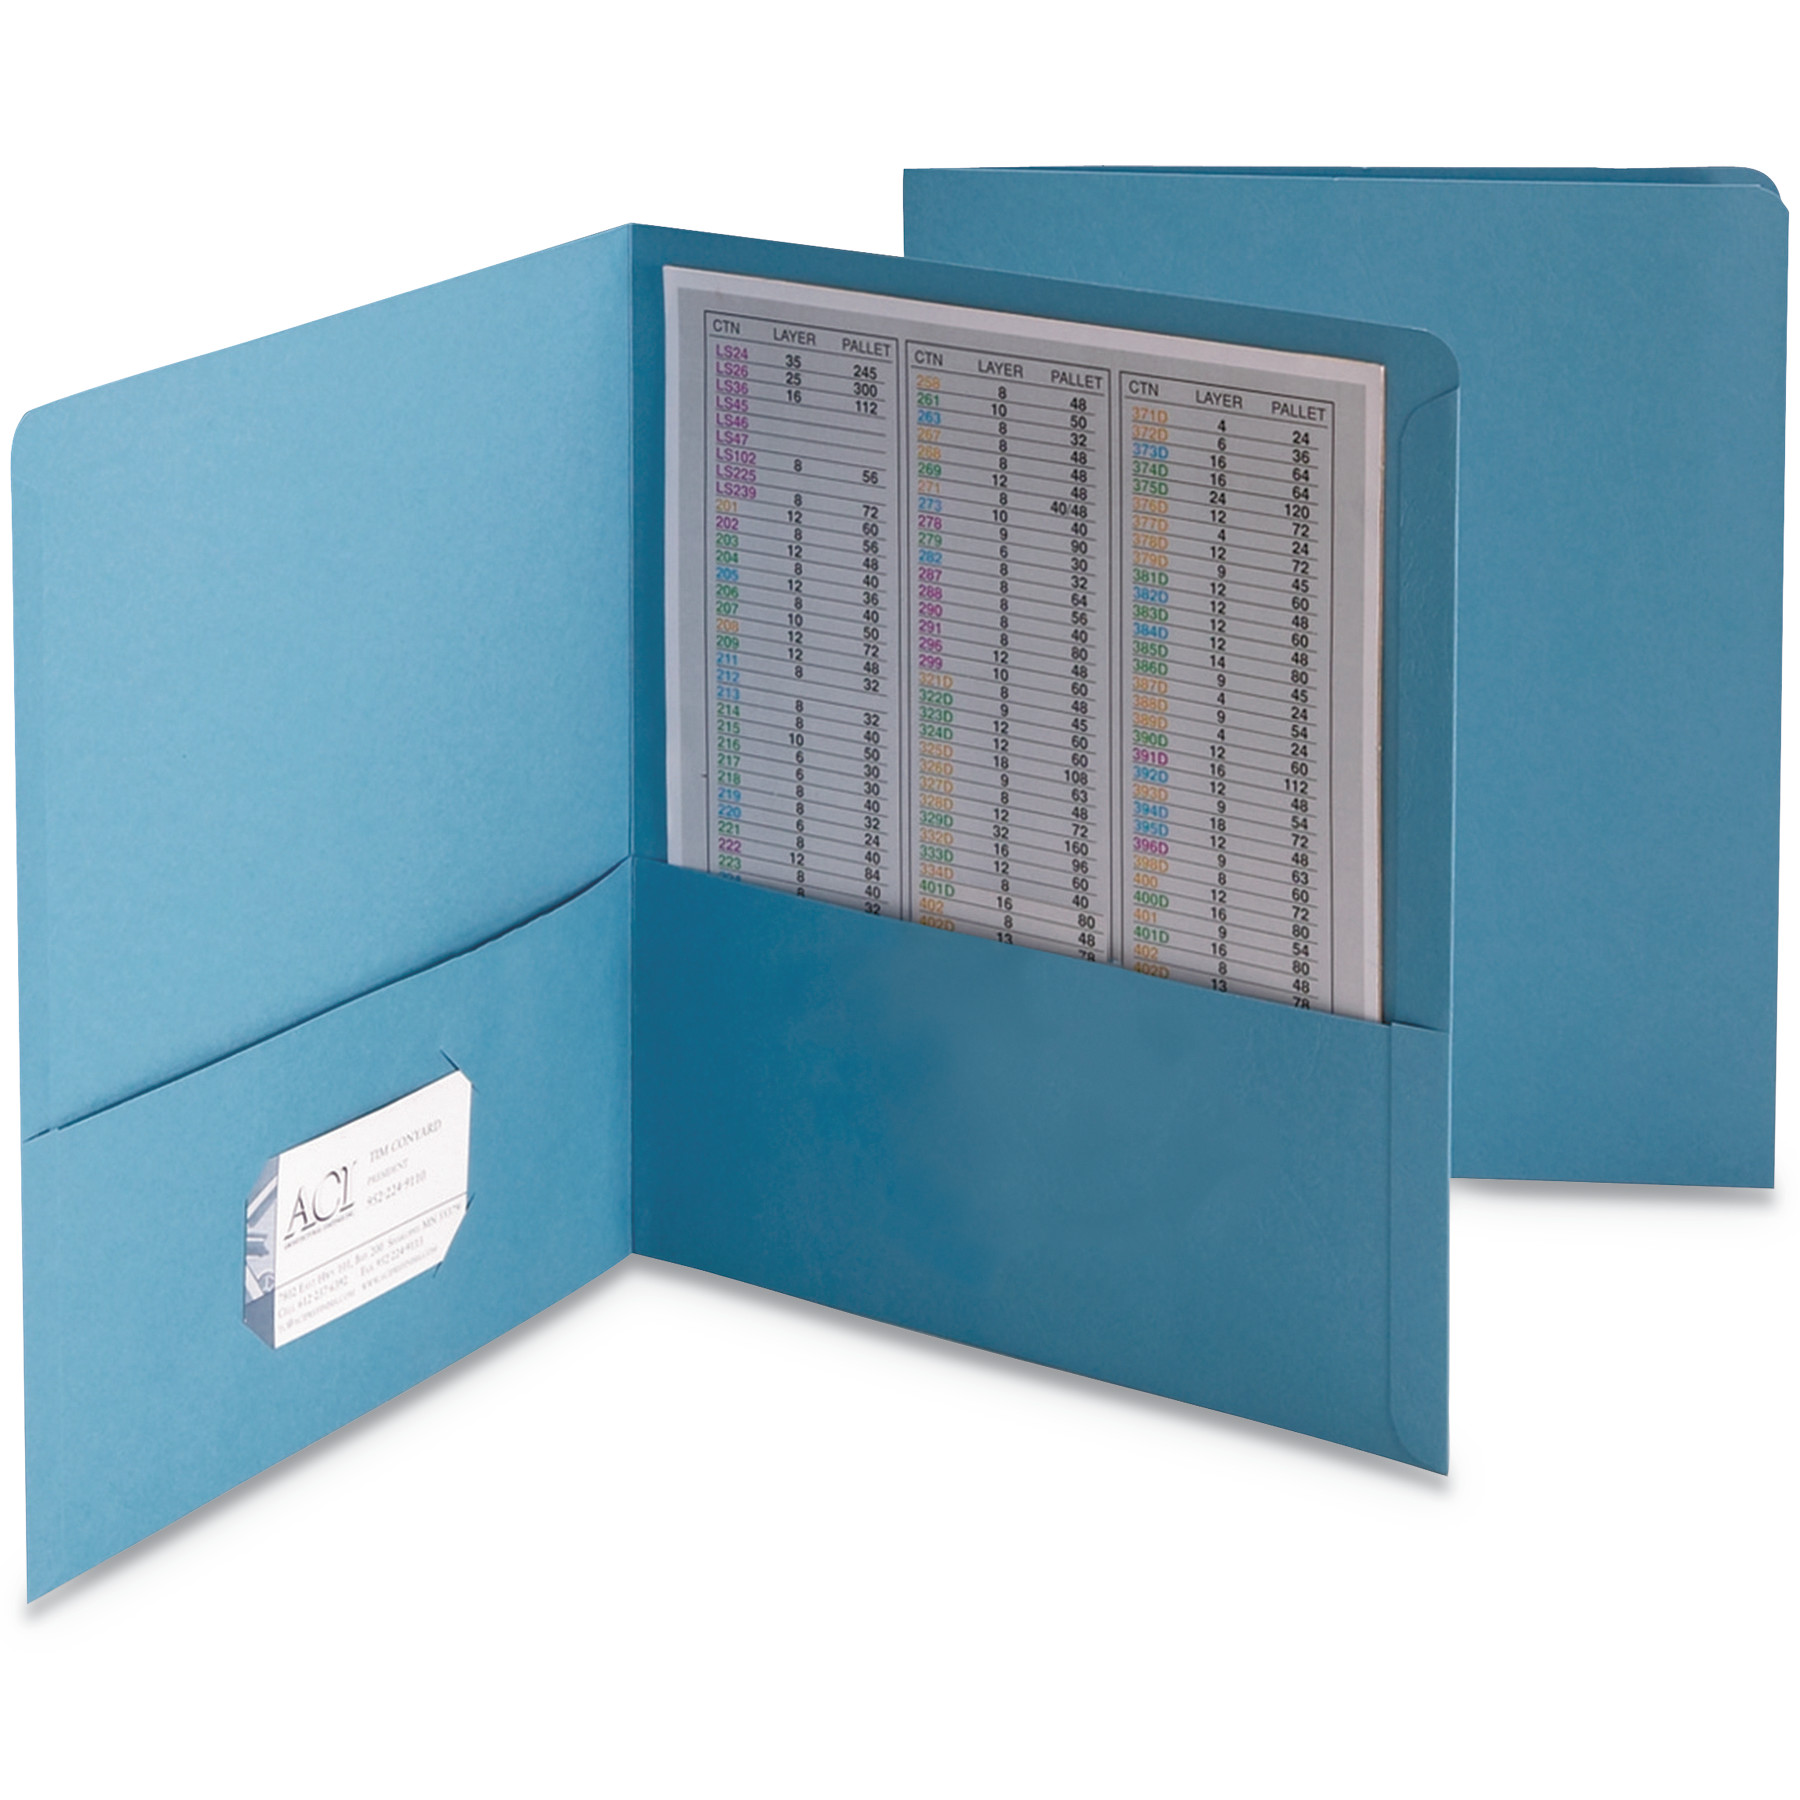 Smead Two-Pocket Folder, Embossed Leather Grain Paper, Blue, 25/Box -SMD87852